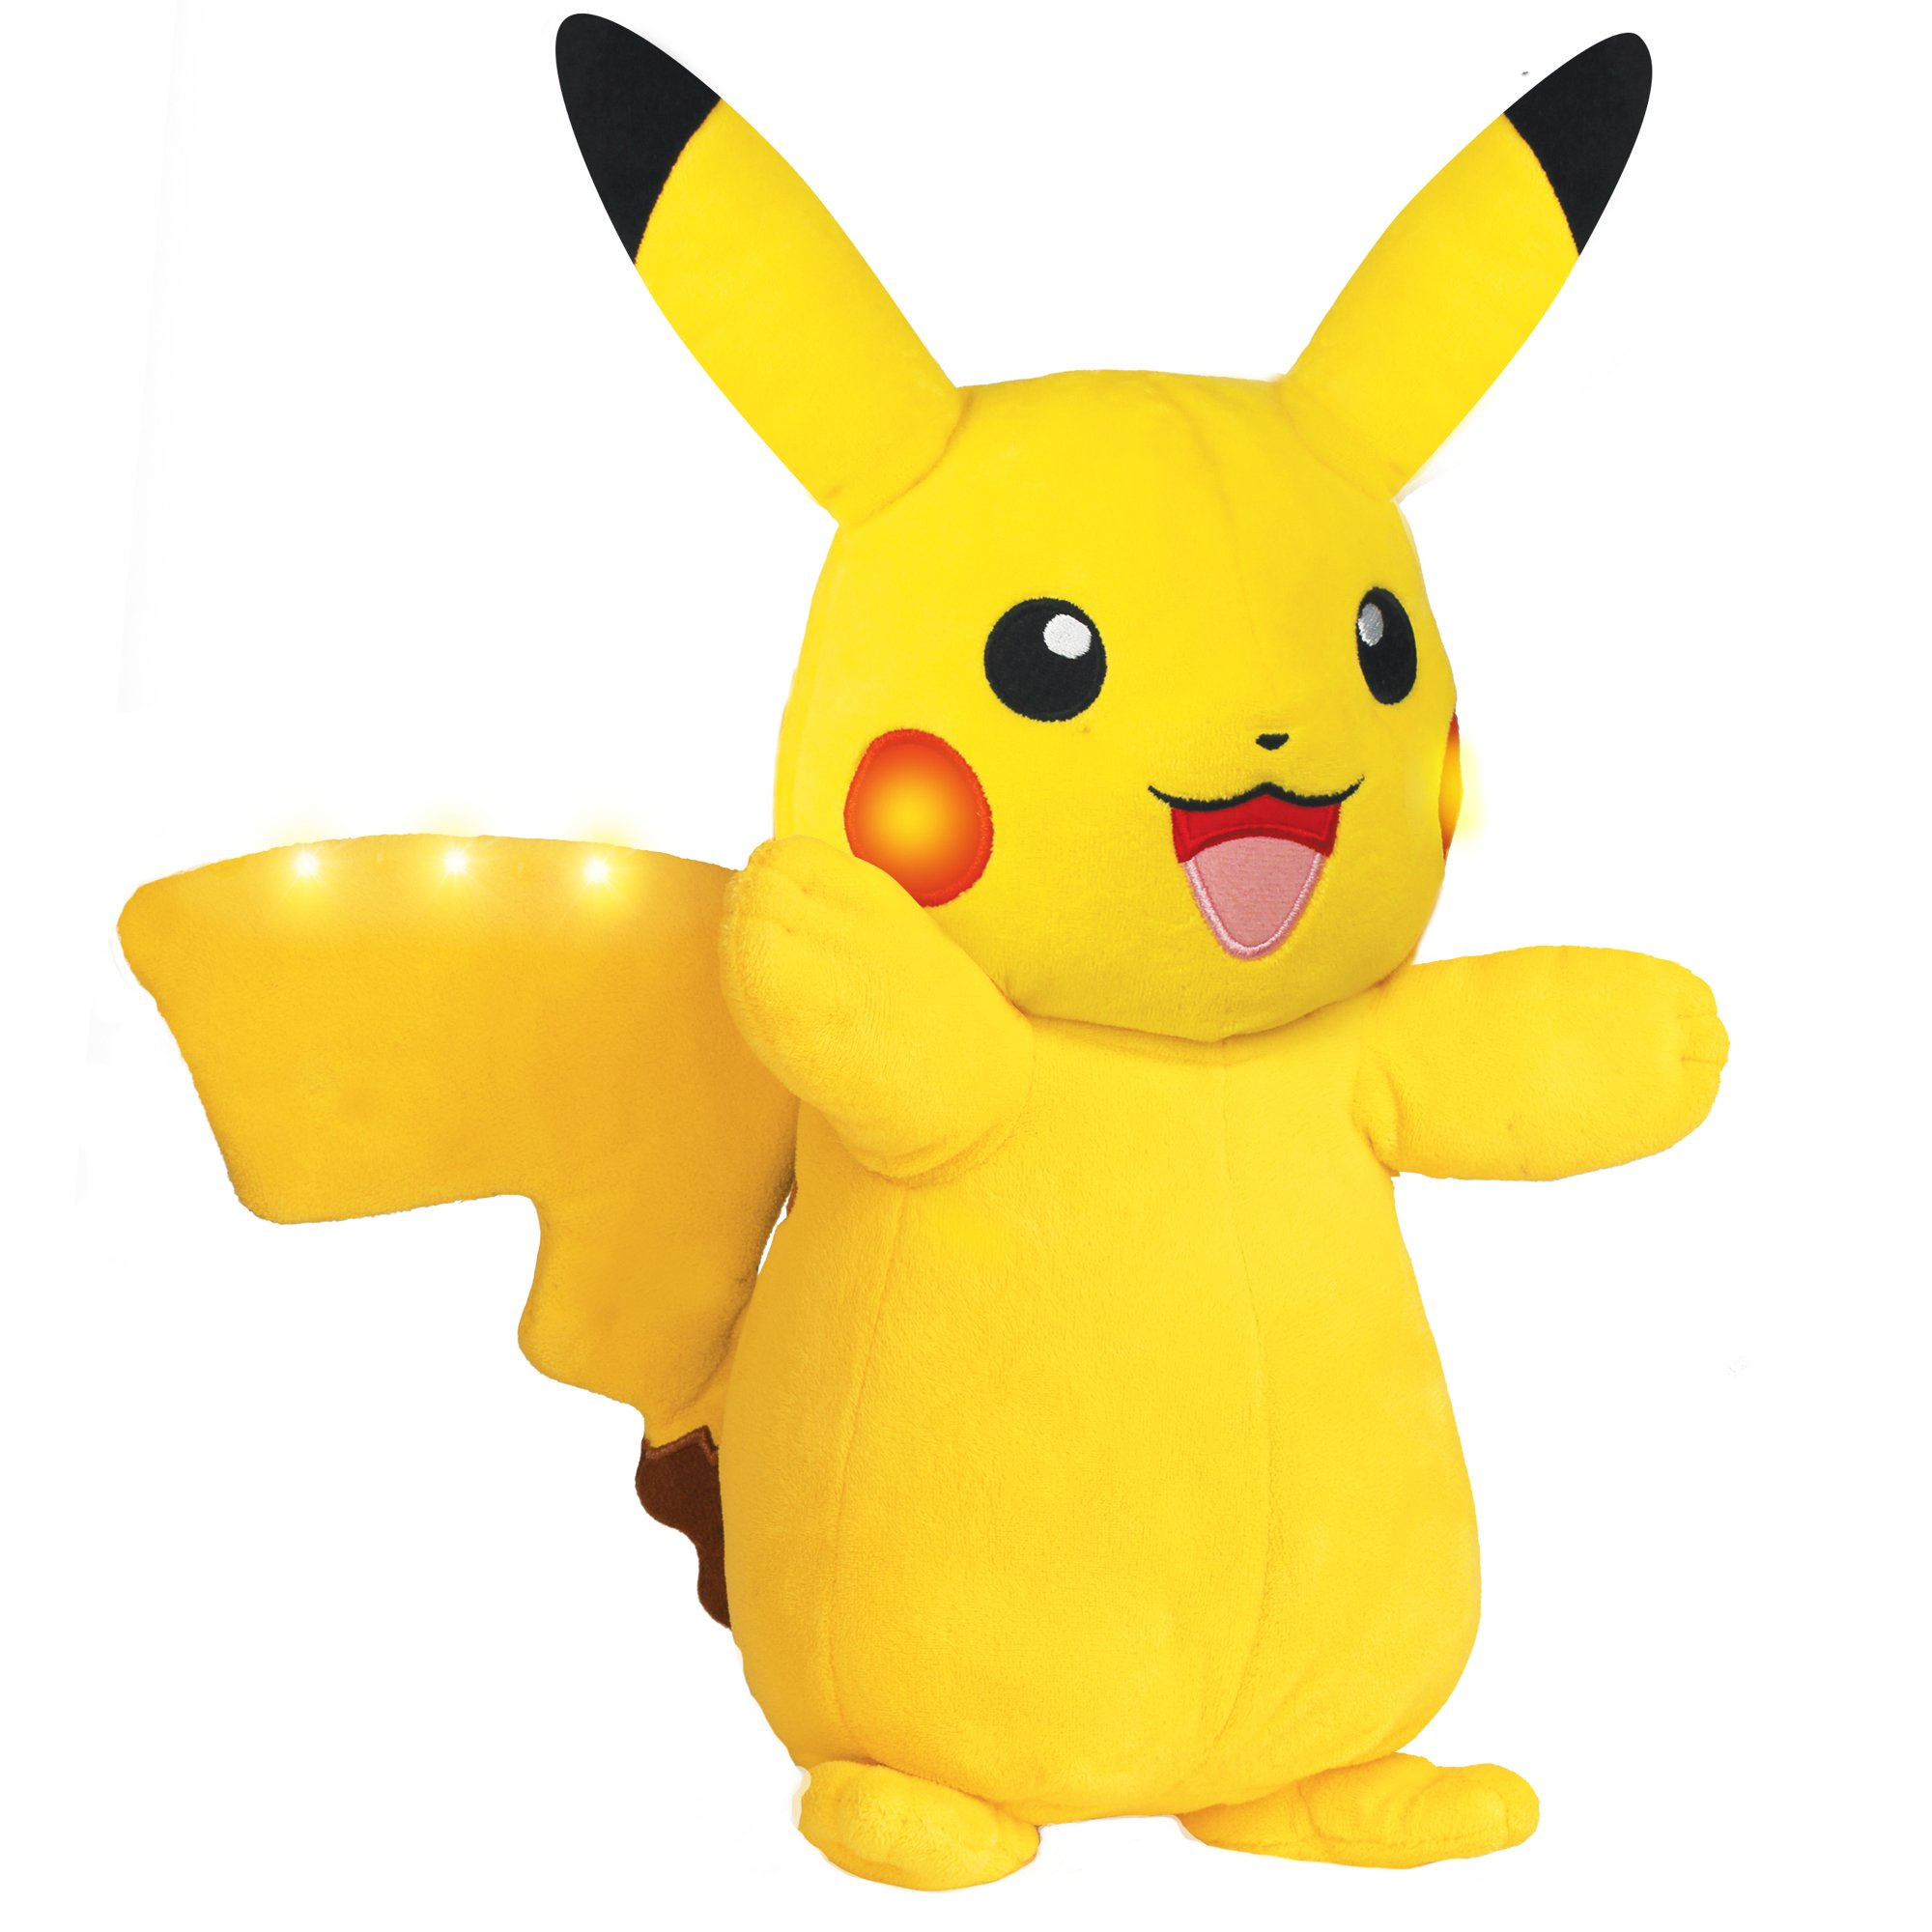 Pokemon Plush, Power Action Interactive Pikachu - Comes with Movement Sensors, Lights and Sounds by Pokemon